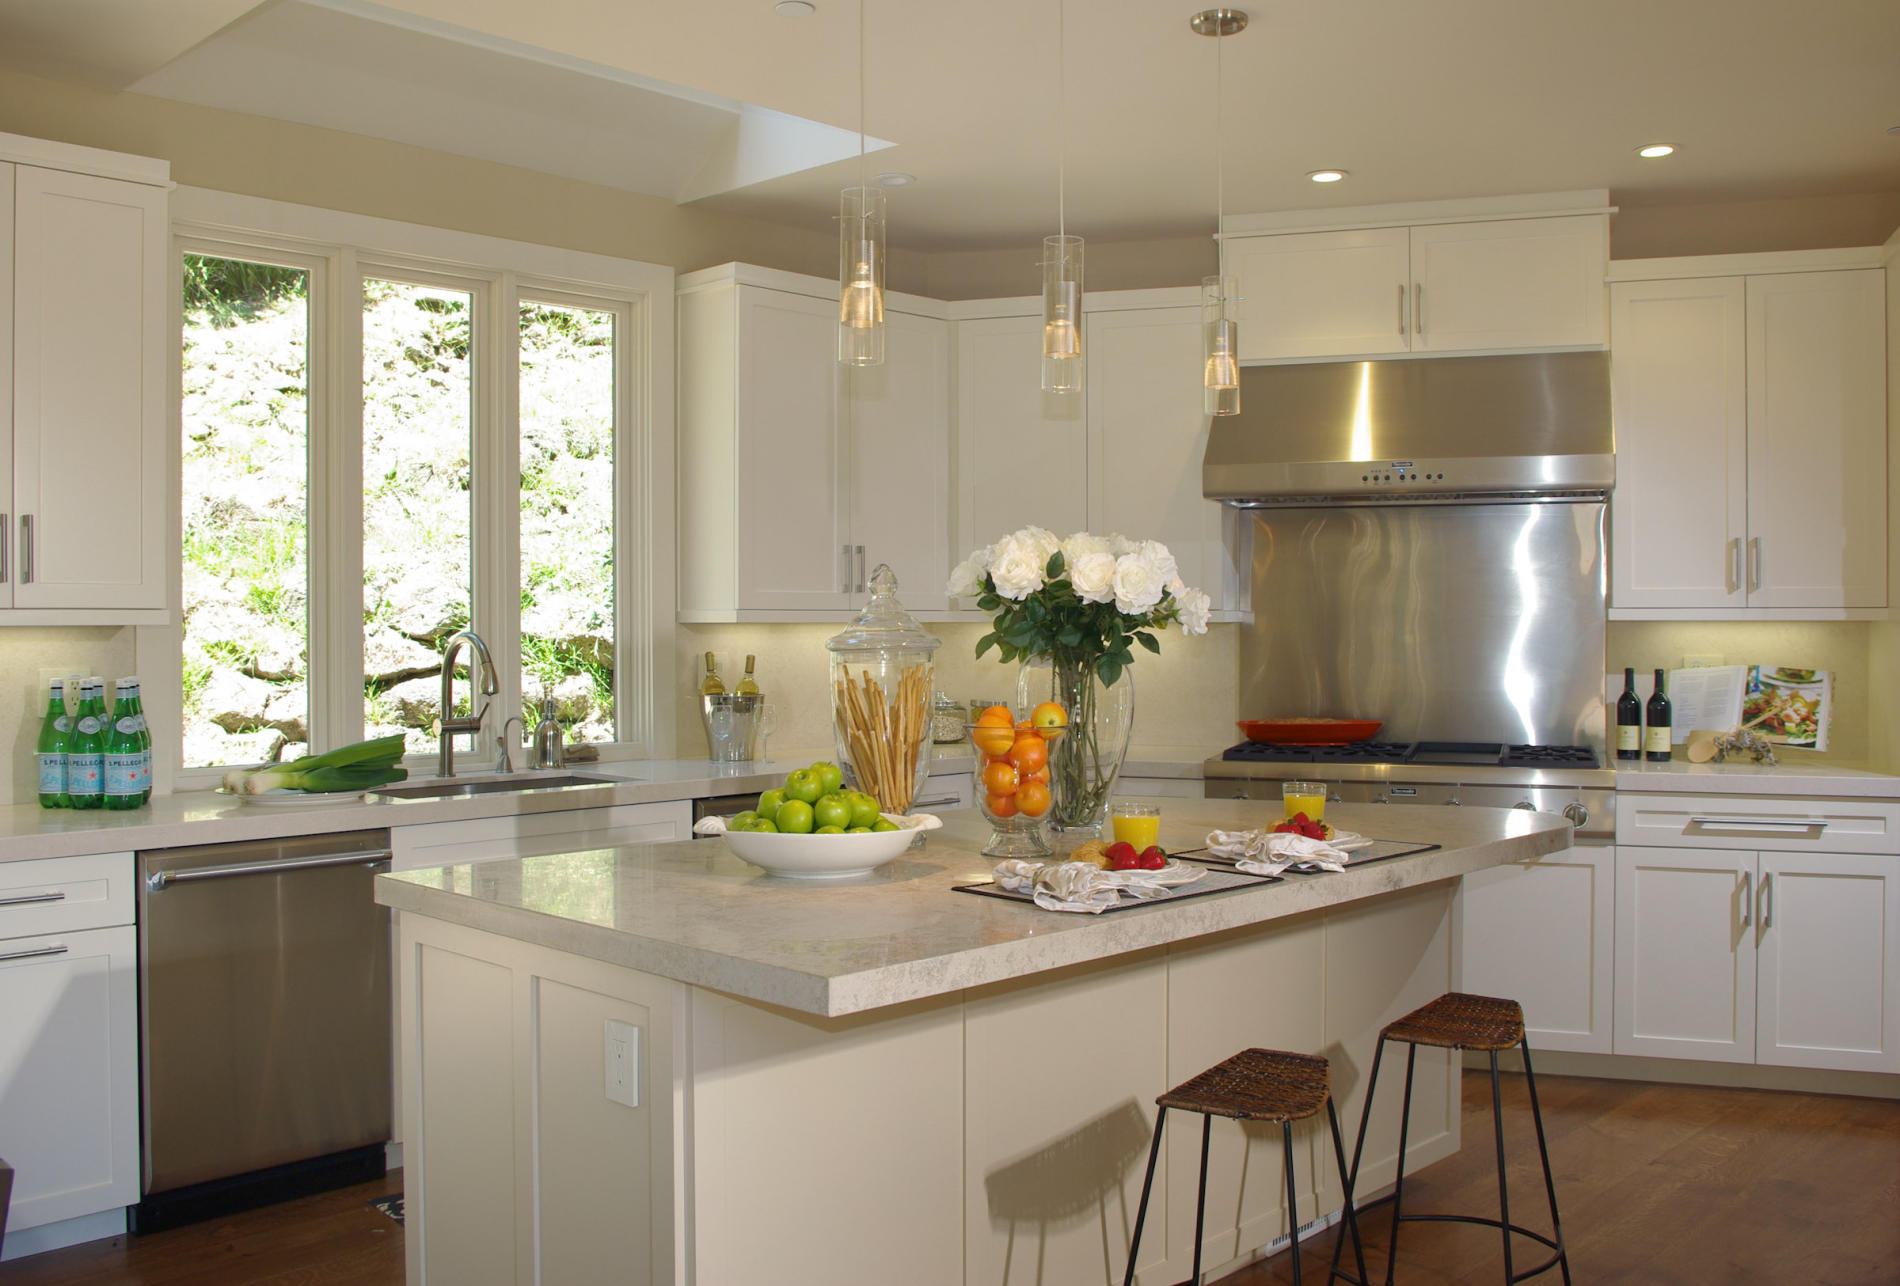 kitchen-design-light-modern-renovation-great-with-photos-of-kitchen-design-model-new-on-gallery.jpg